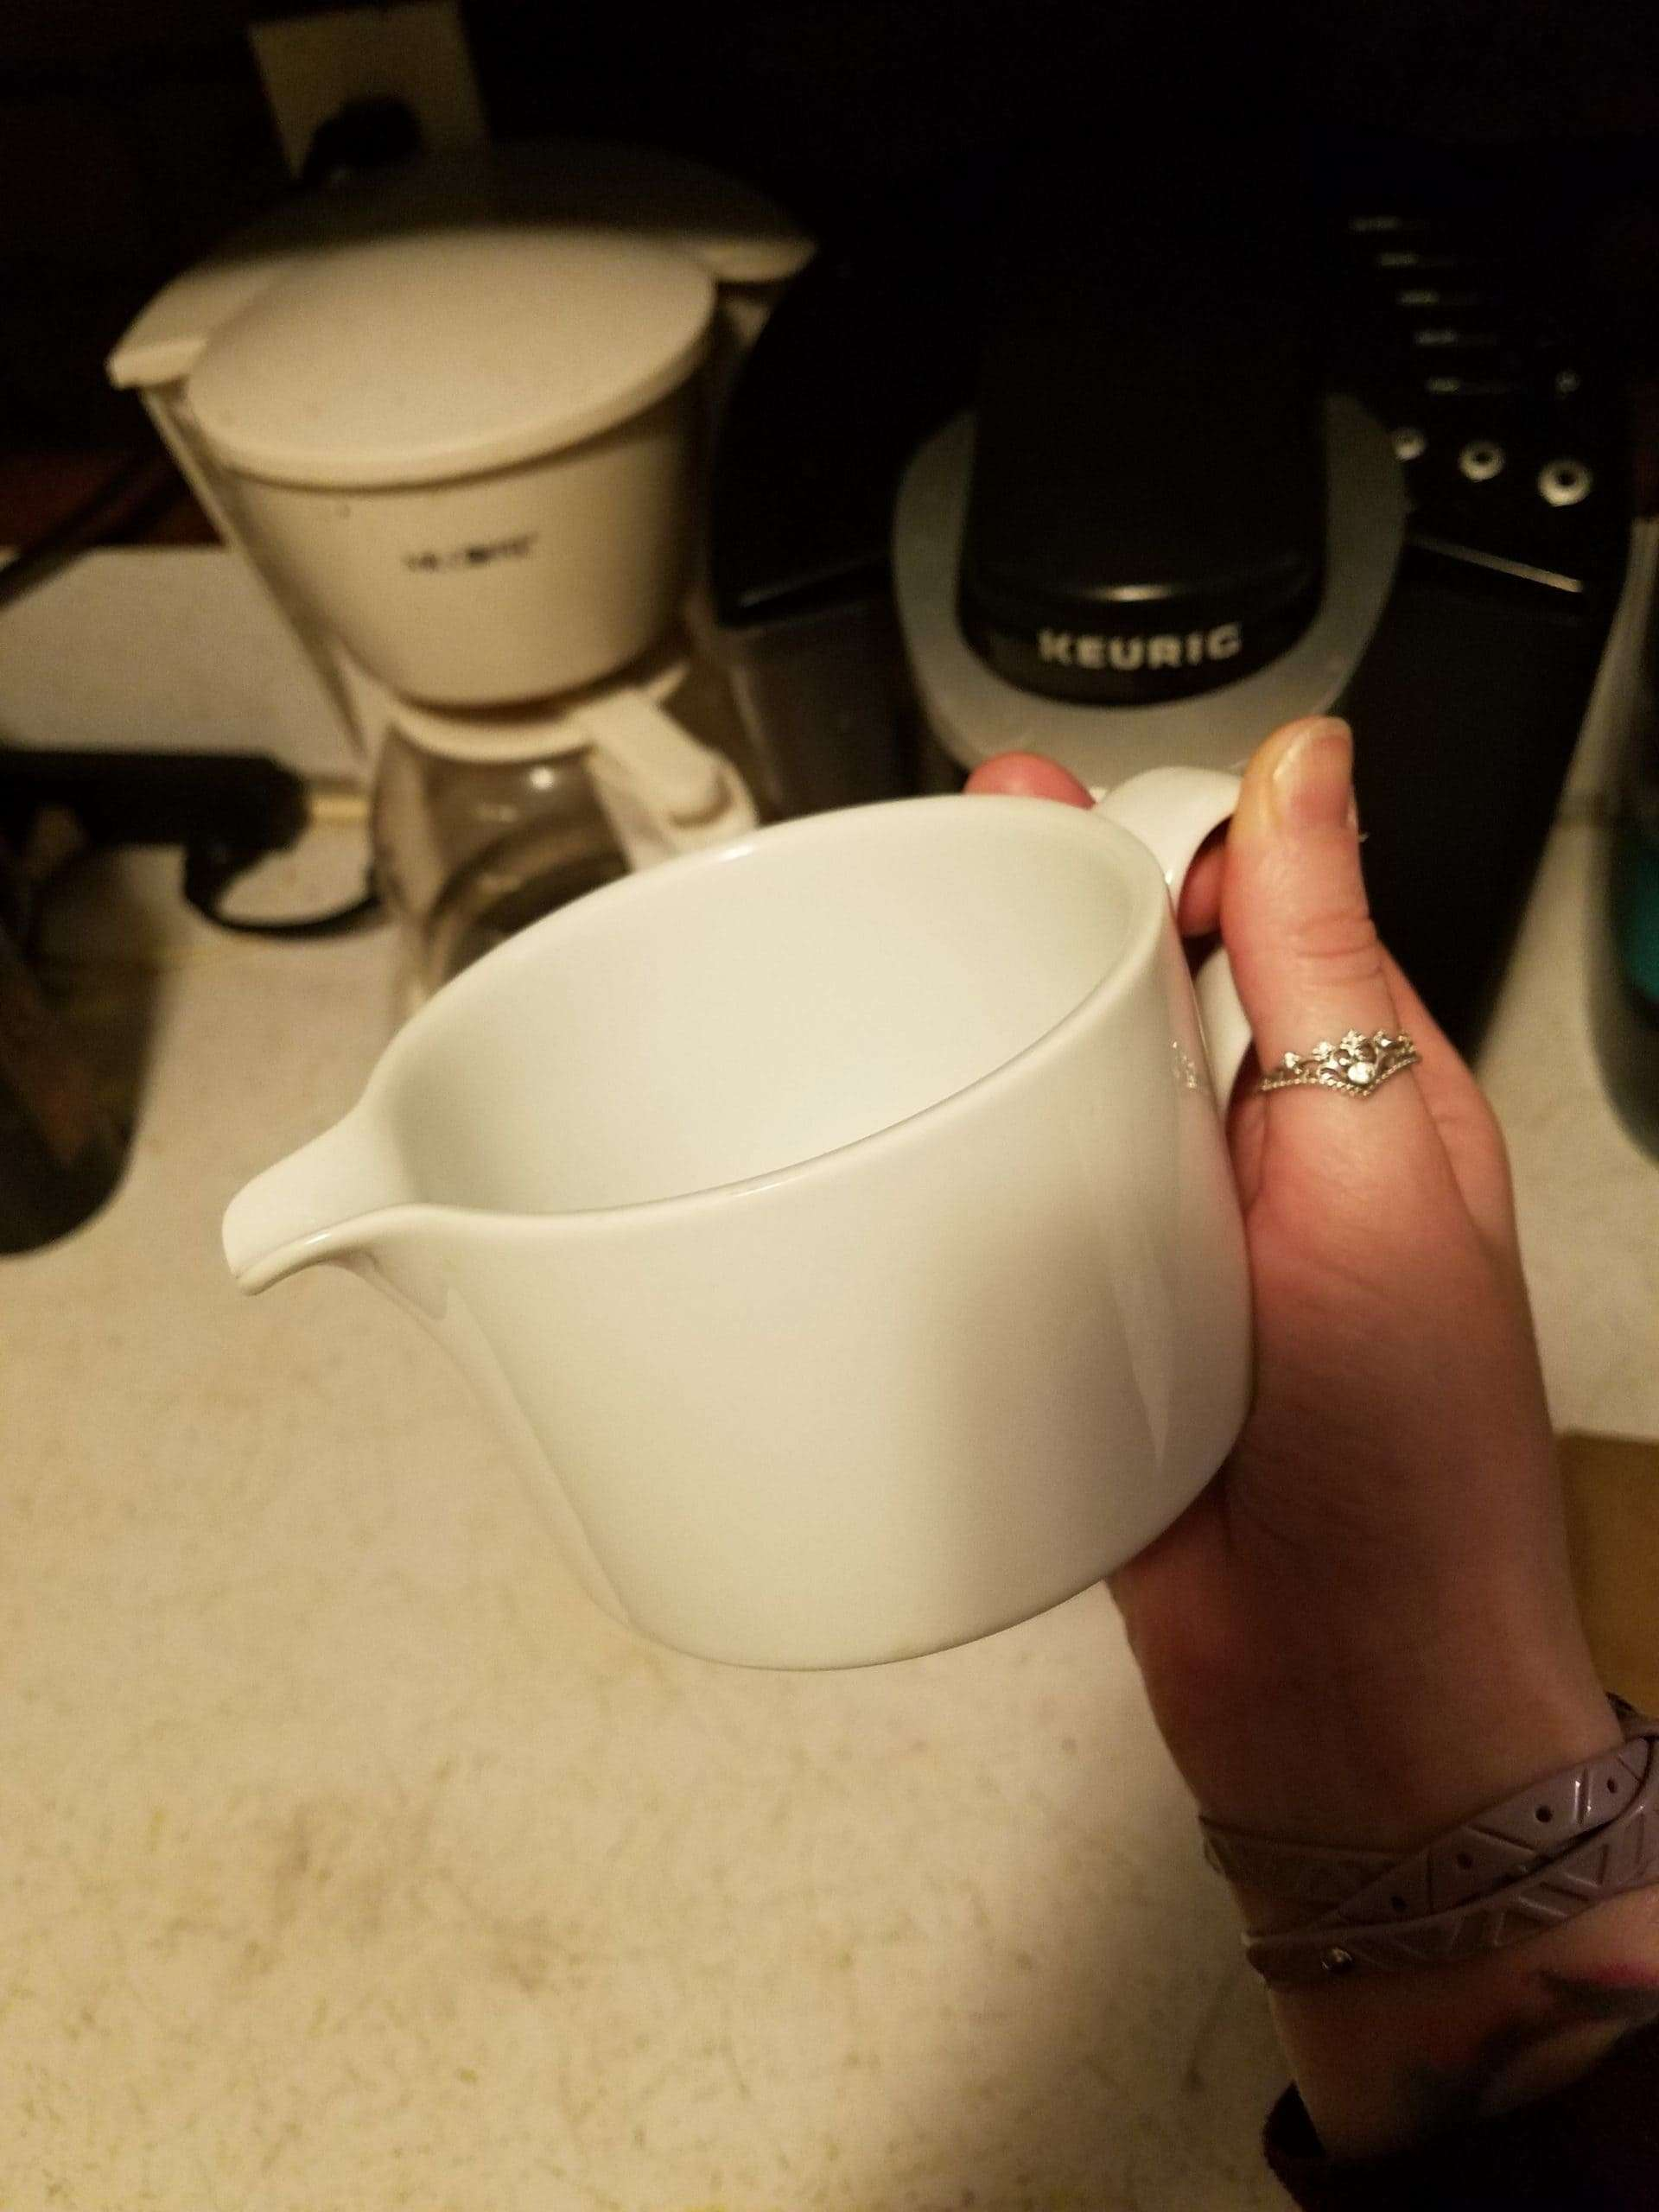 The Creamer Quest - A photo of a rather large creamer.